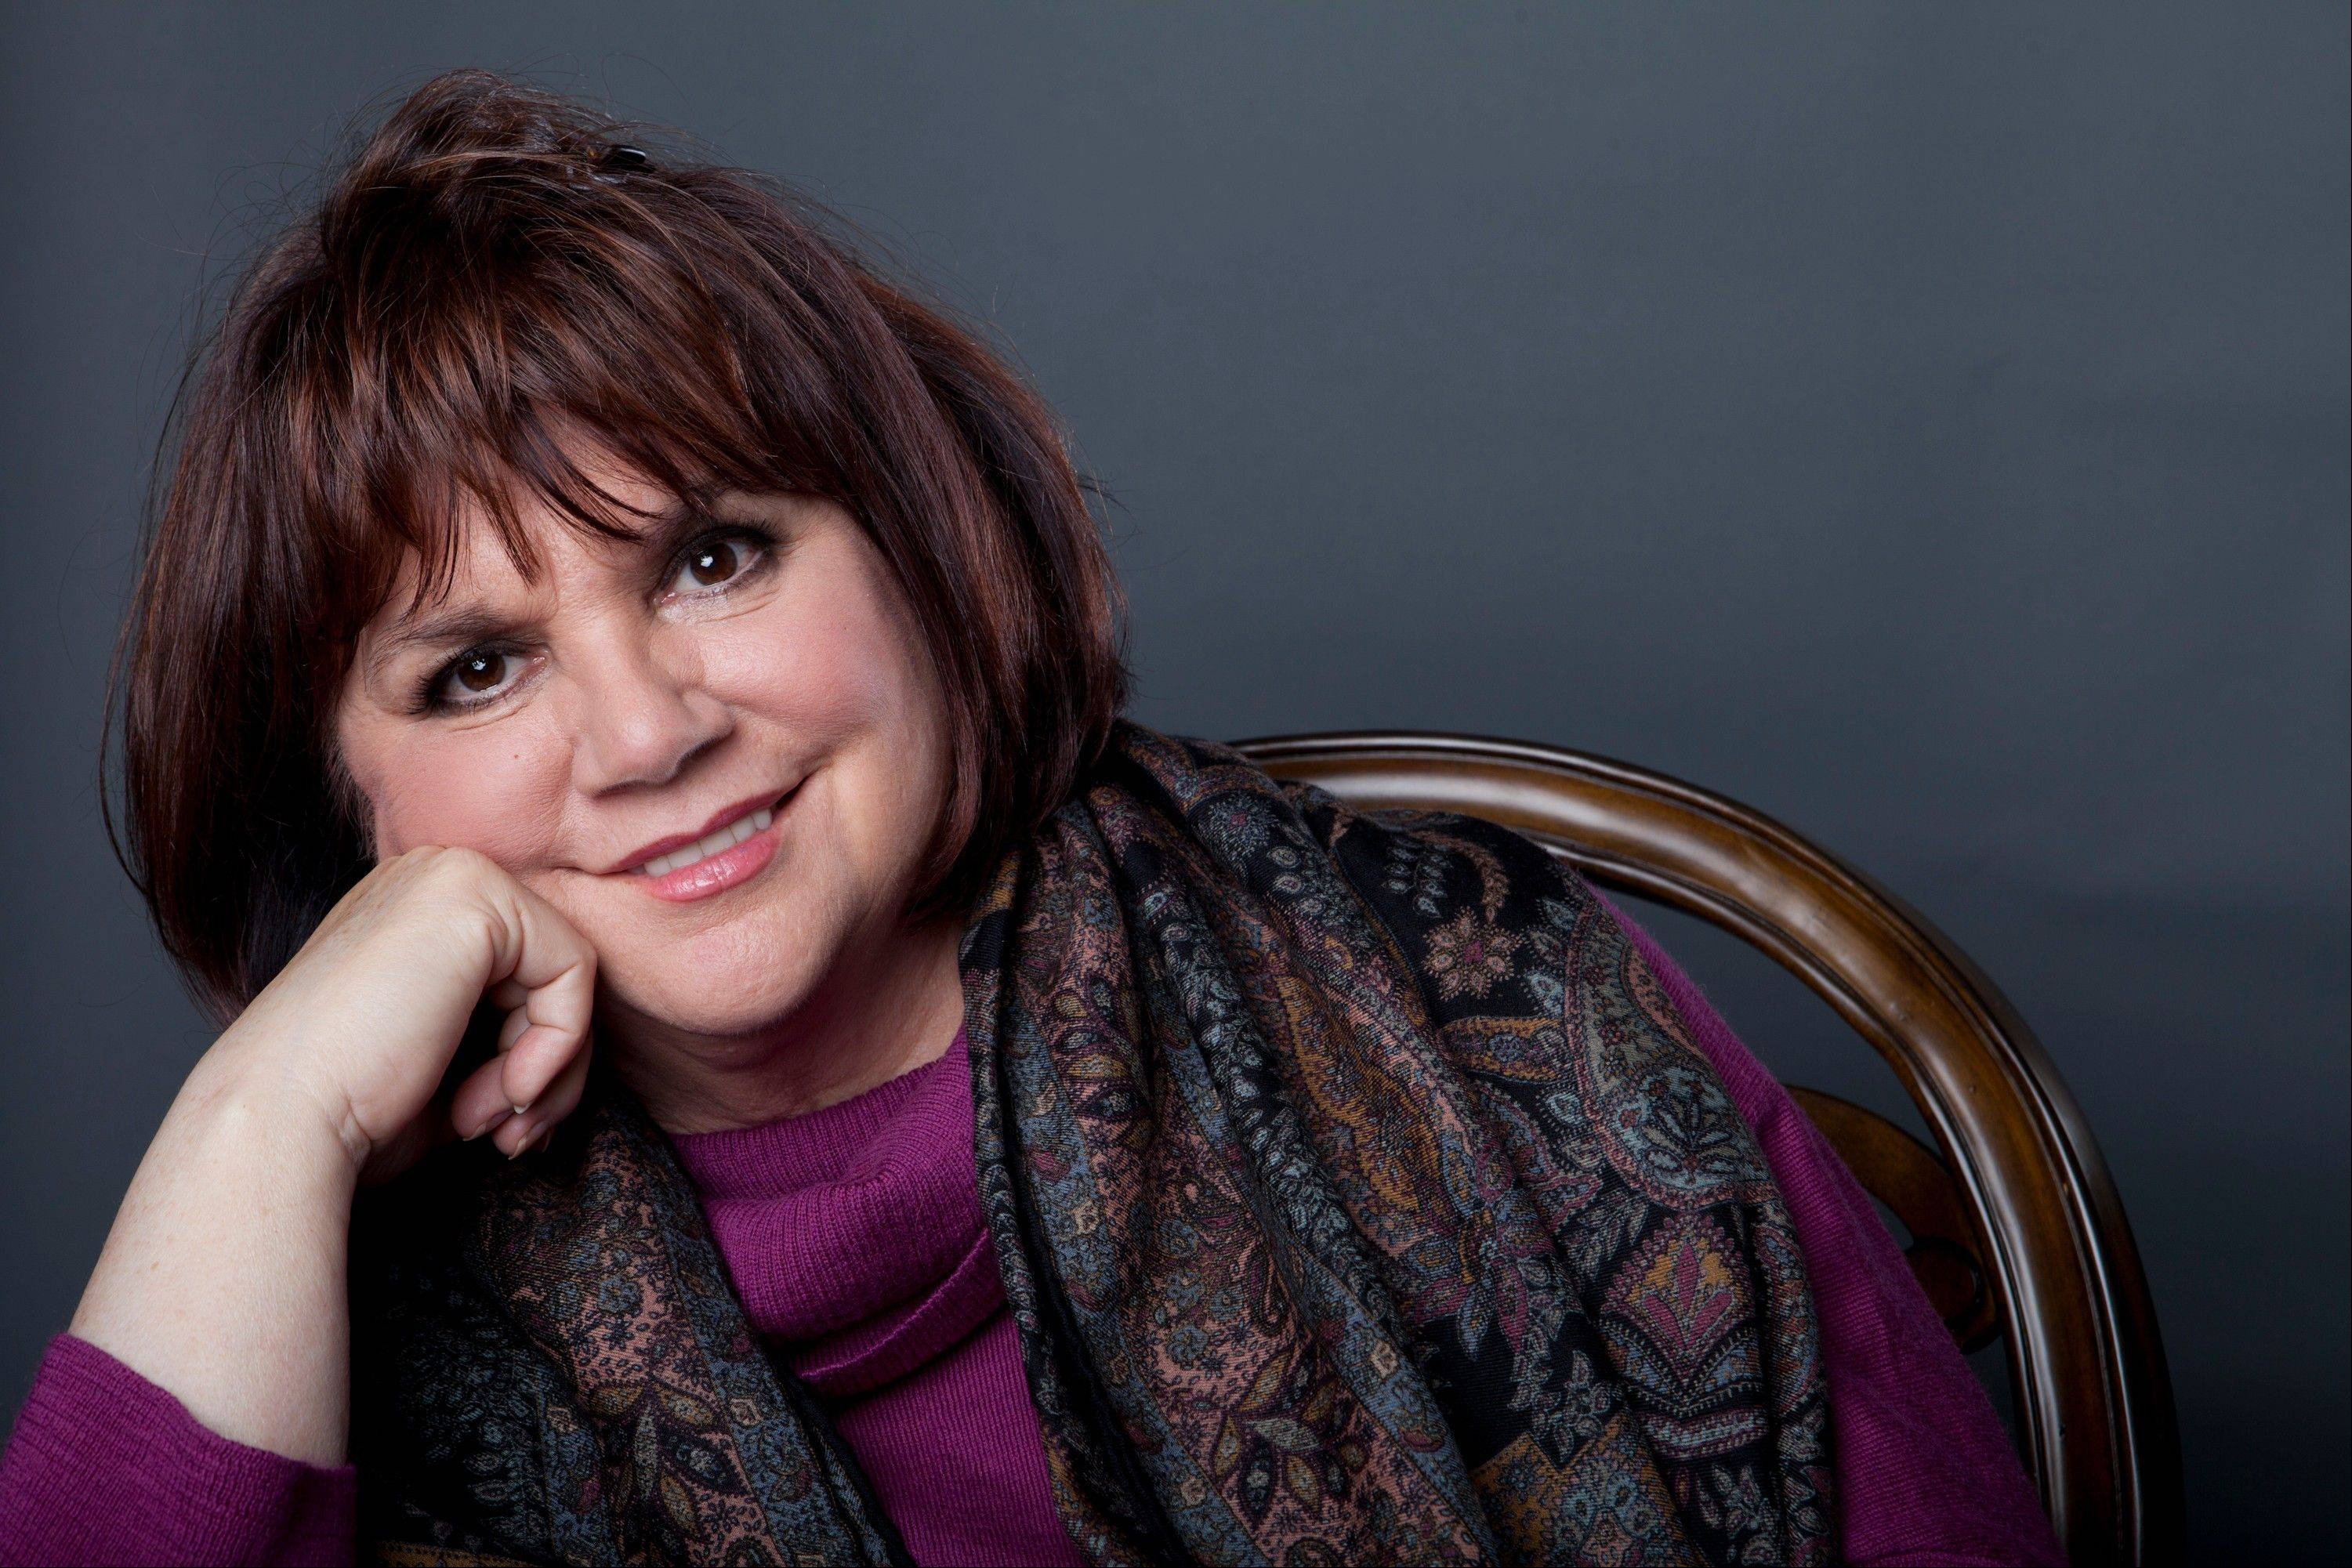 Musician Linda Ronstadt will be inducted into the 2014 Rock and Roll Hall of Fame on April 10 at the Barclays Center in New York.